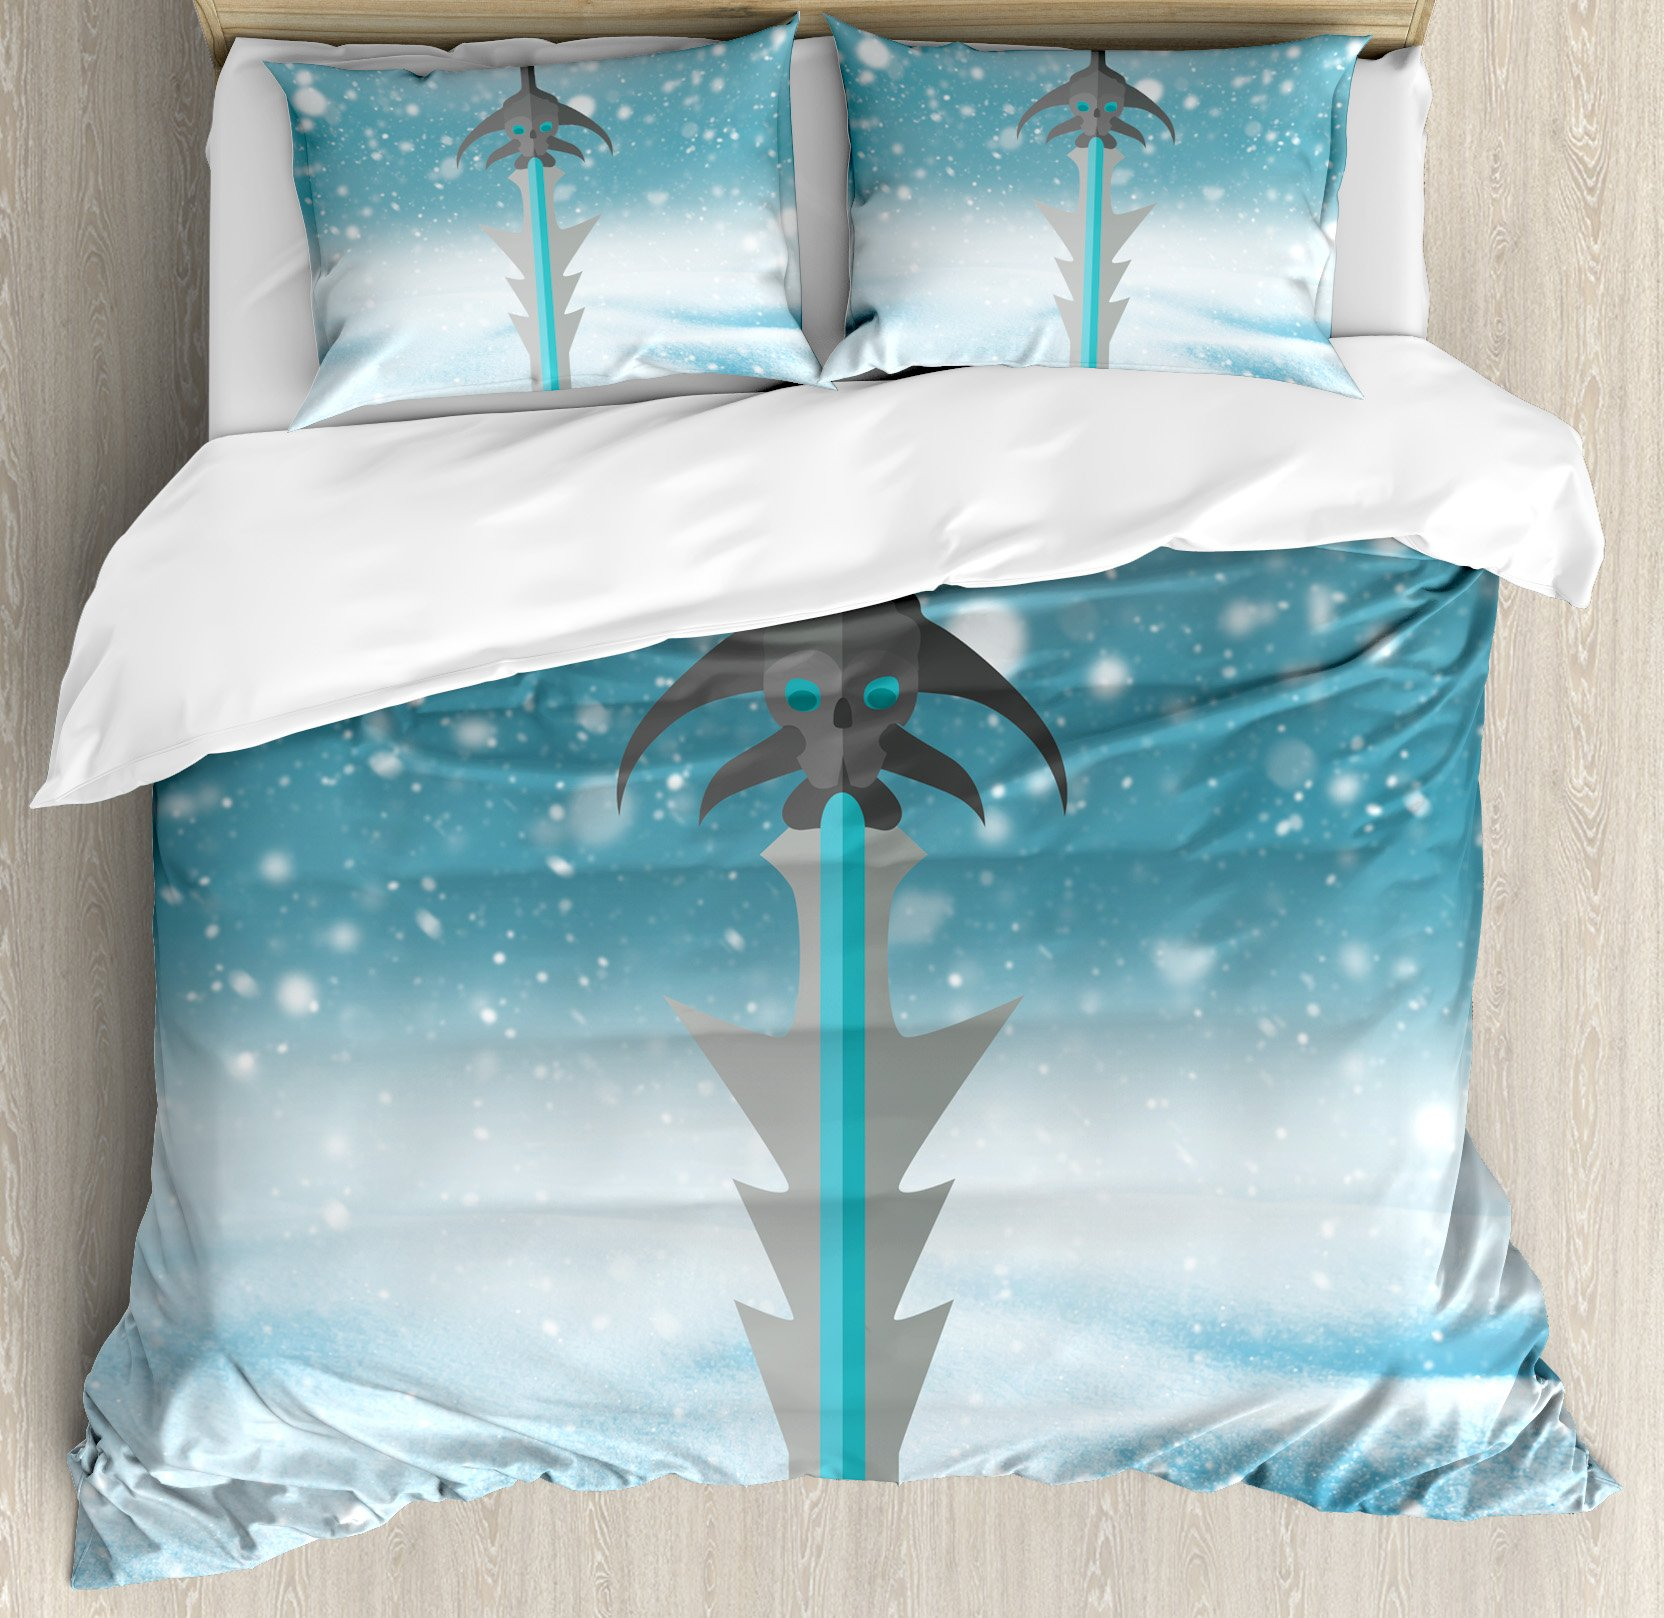 Video Game Duvet Cover Set King Size by Ambesonne, Sword with Skull Pattern Weapon Evil Being Fantasy Magical Snowy Sky, Decorative 3 Piece Bedding Set with 2 Pillow Shams, White Blue and Black